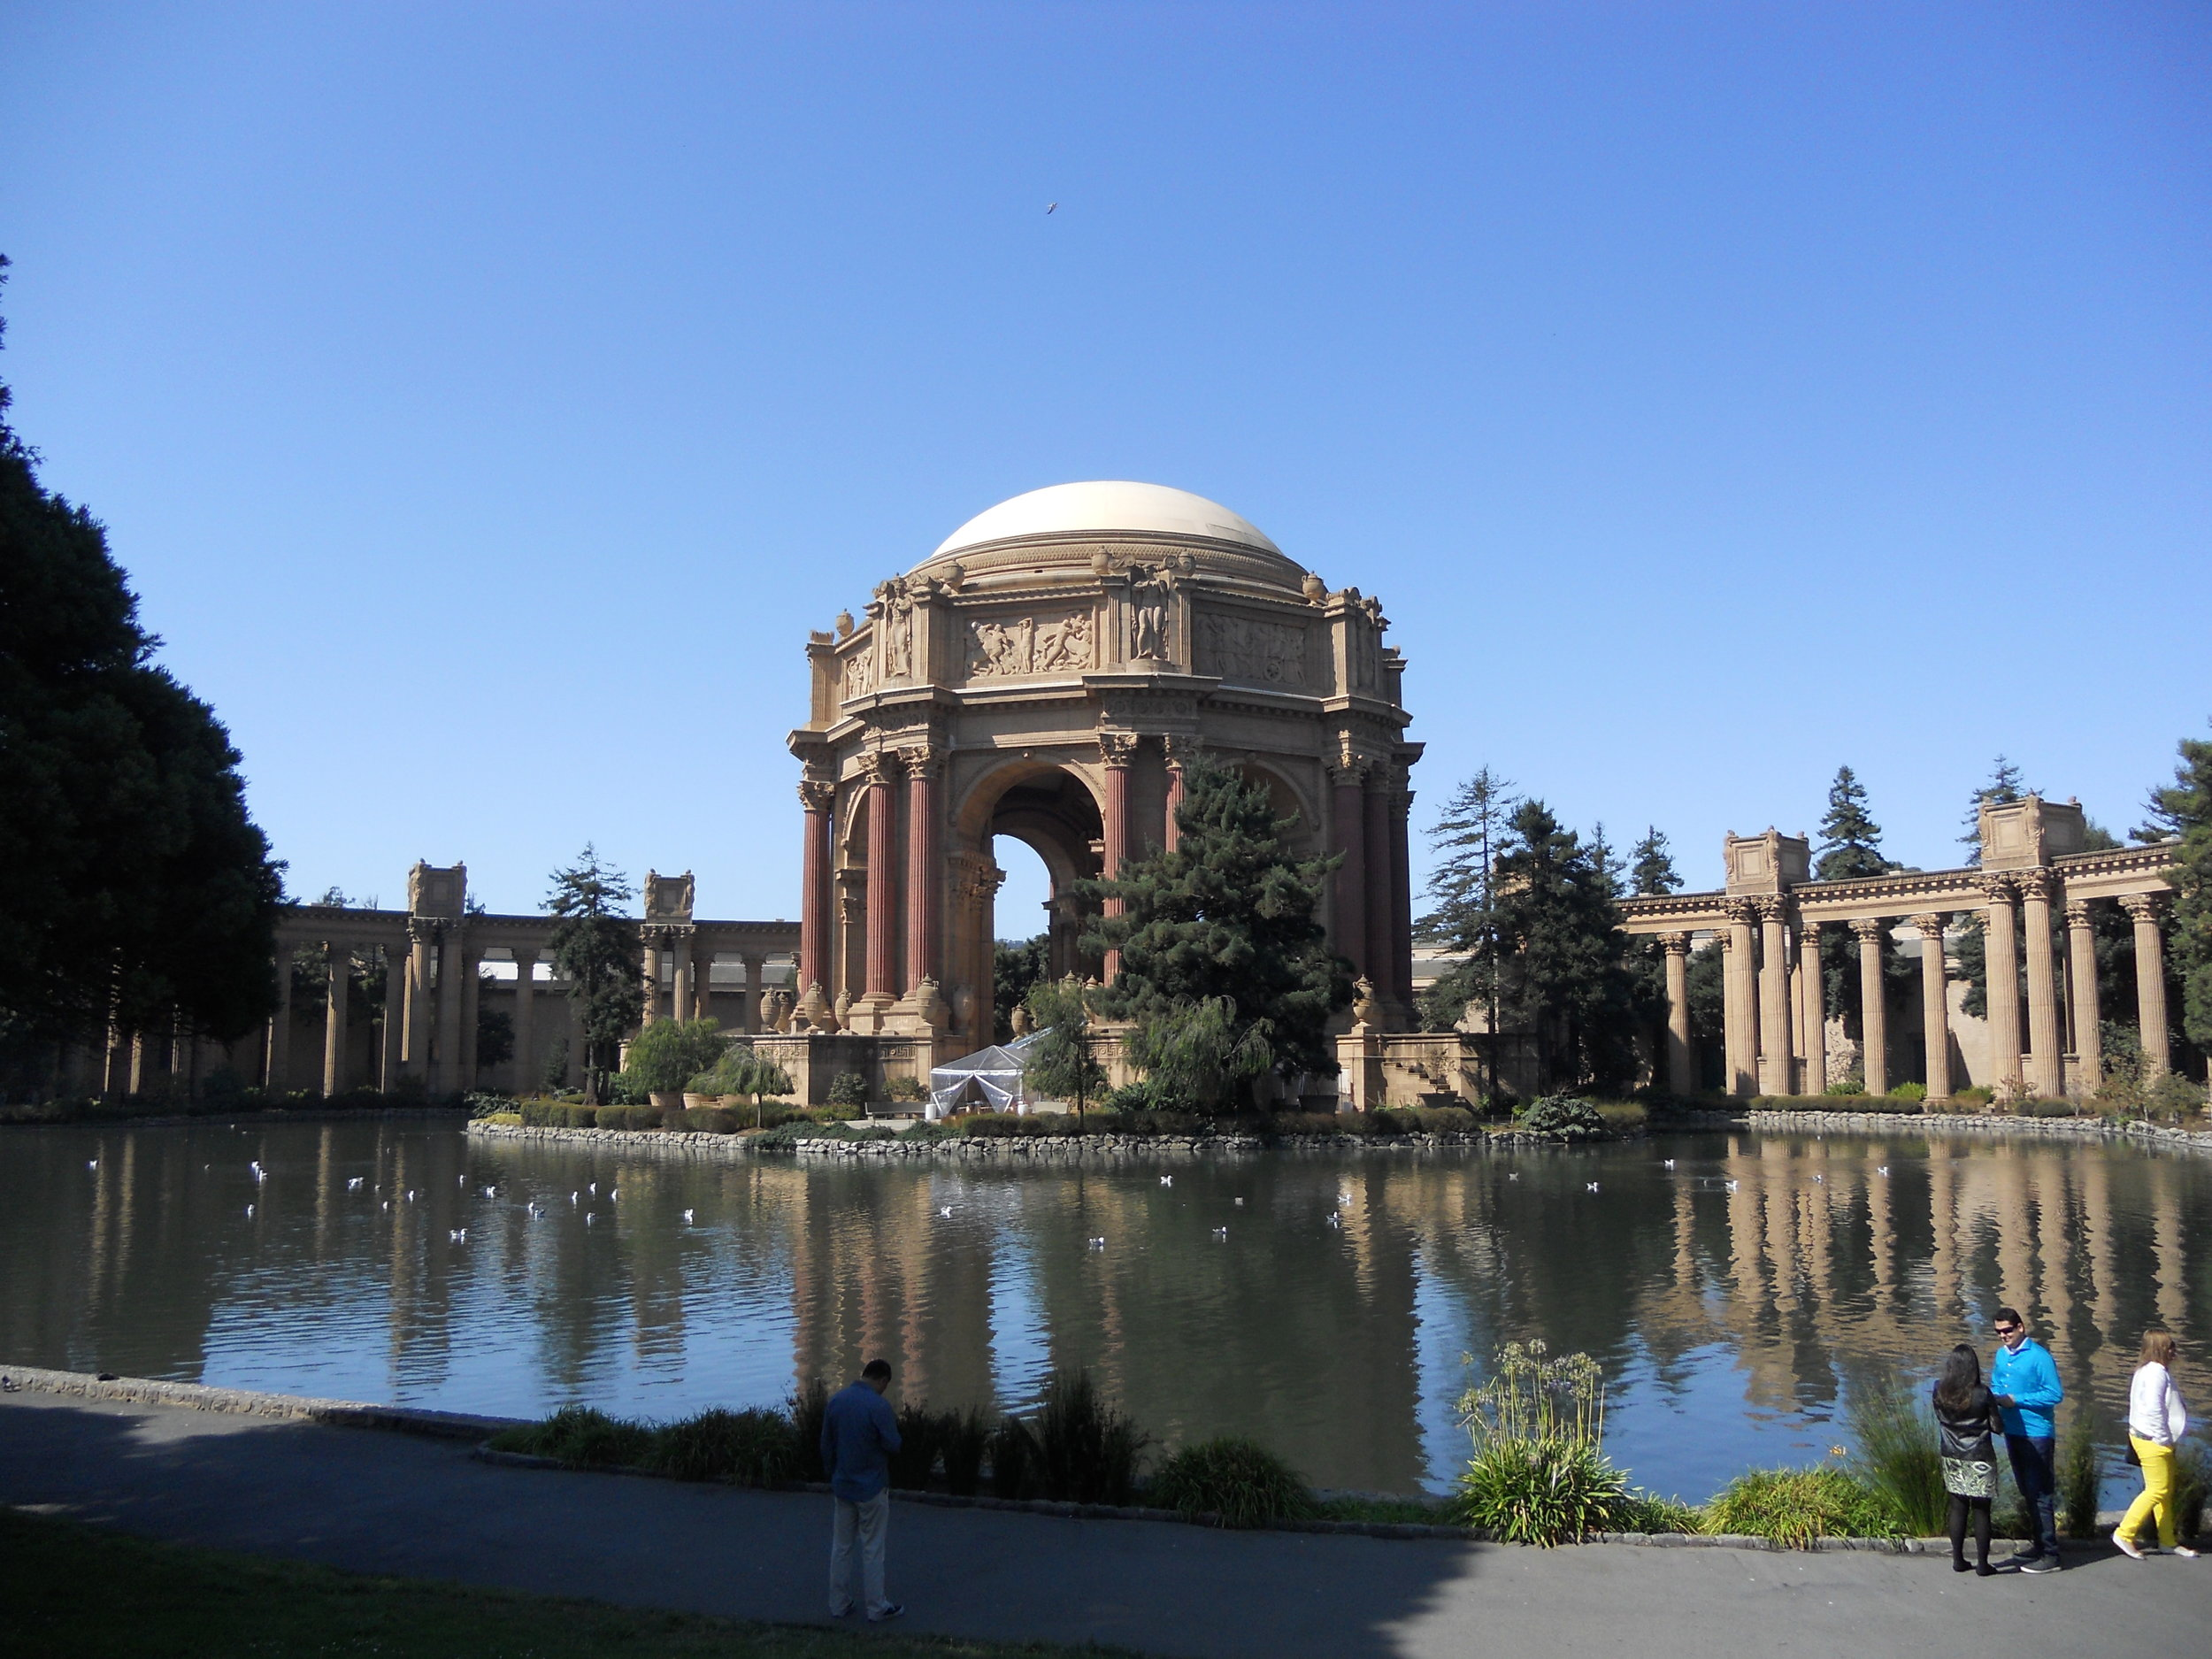 The Palace of Fine Arts Theatre.